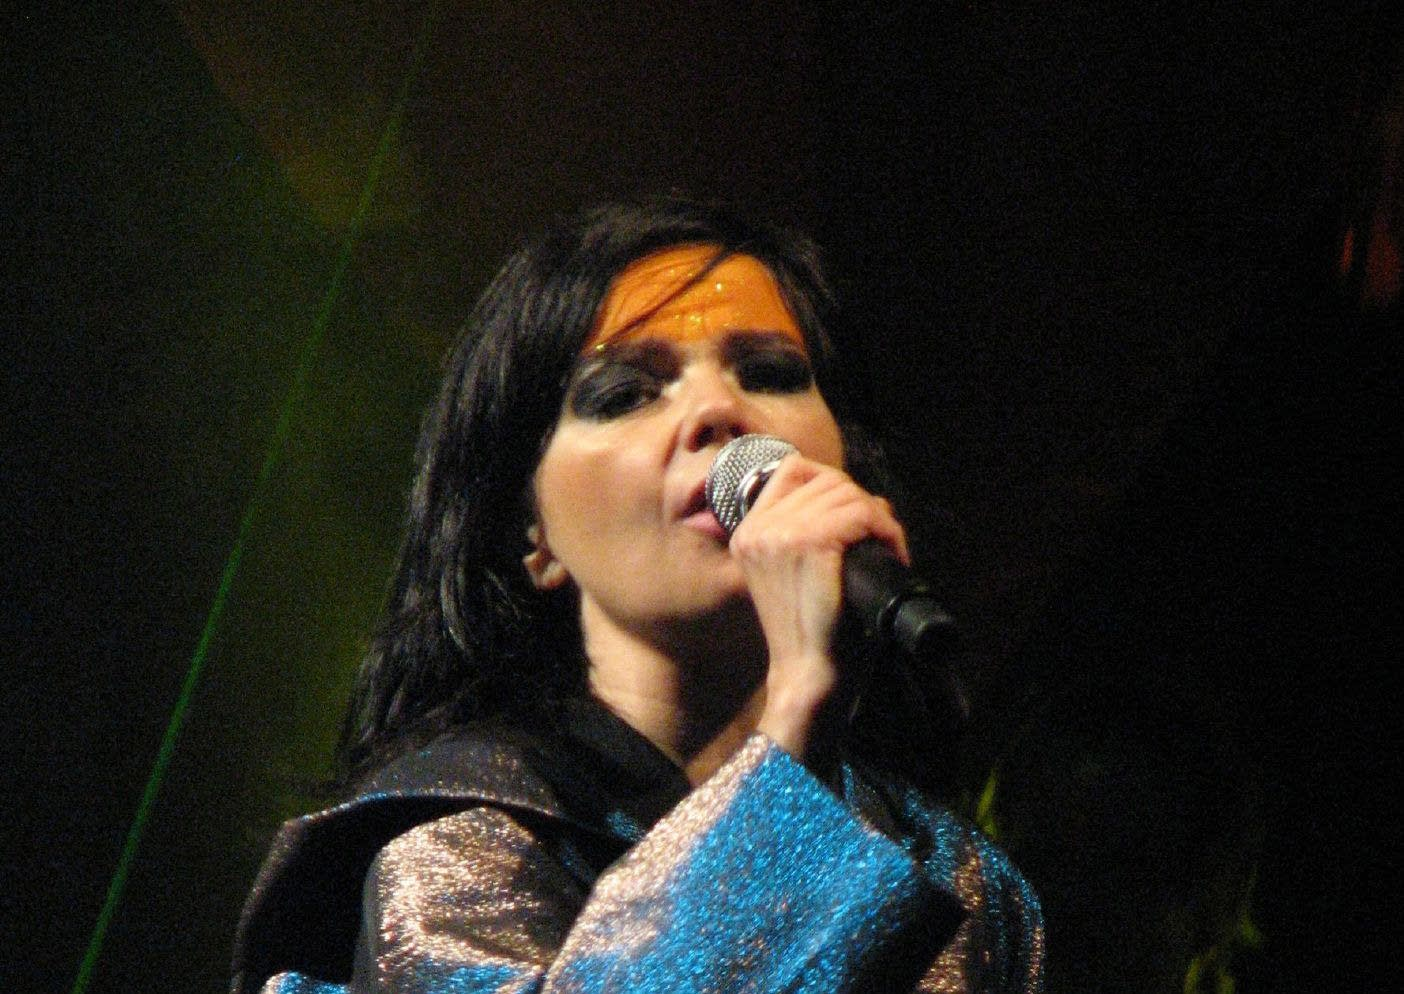 Bjork performing in Vancouver in 2007.